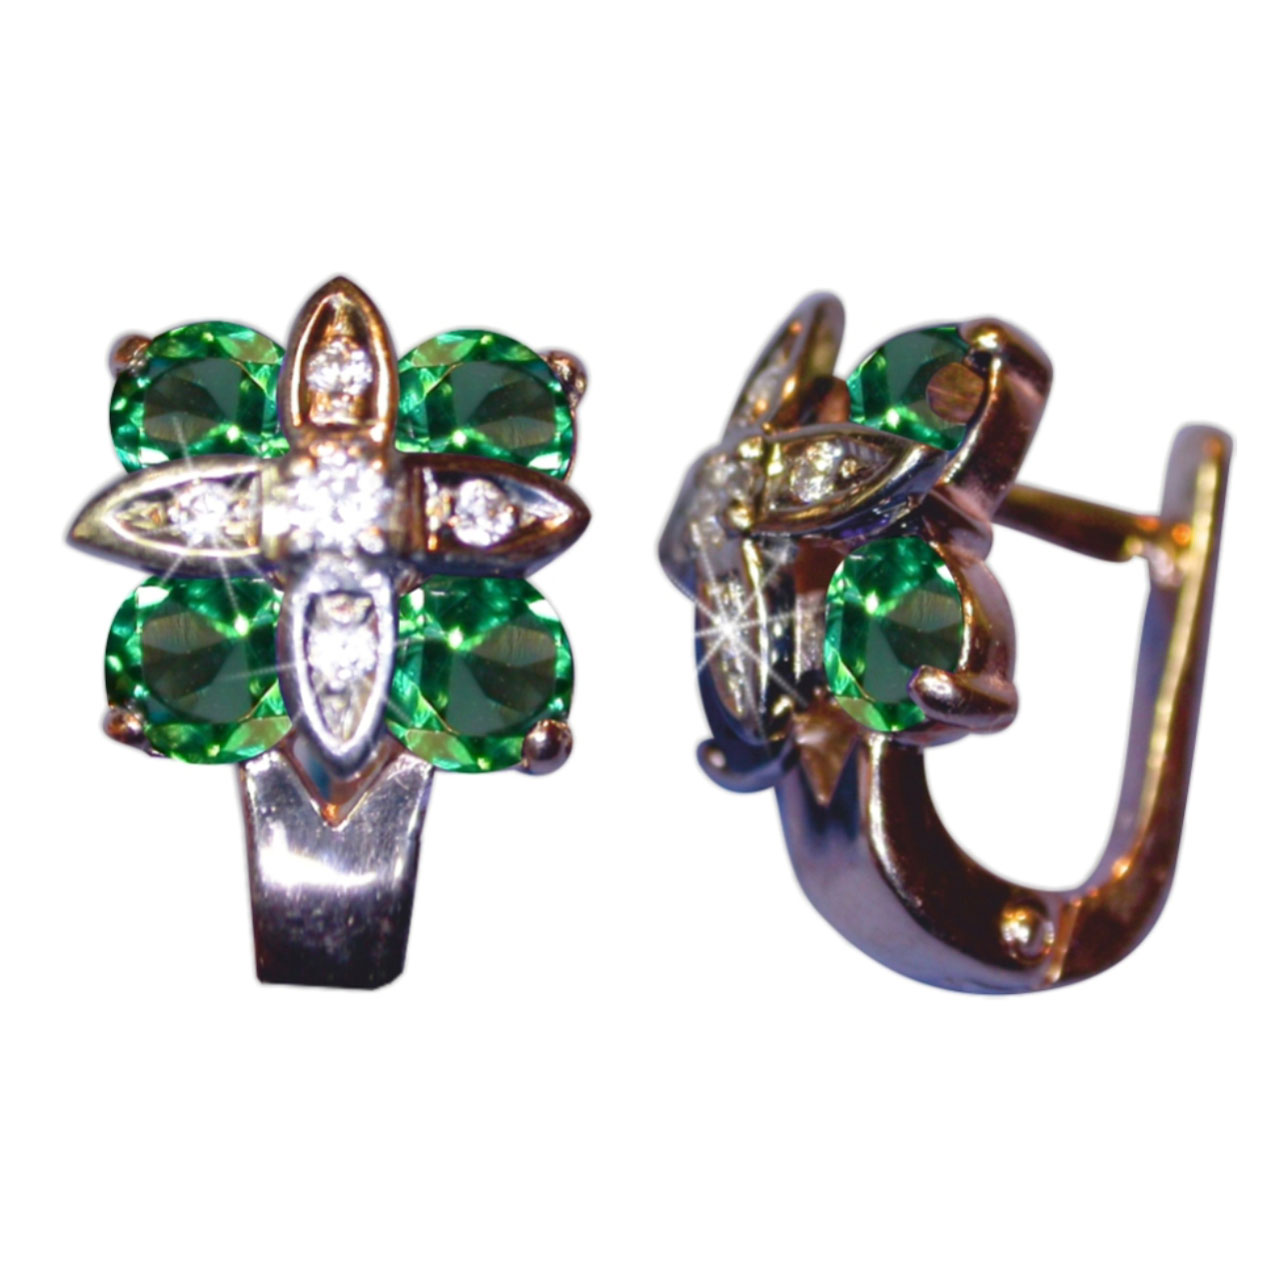 Rose and white Russian gold faux emerald earrings 2